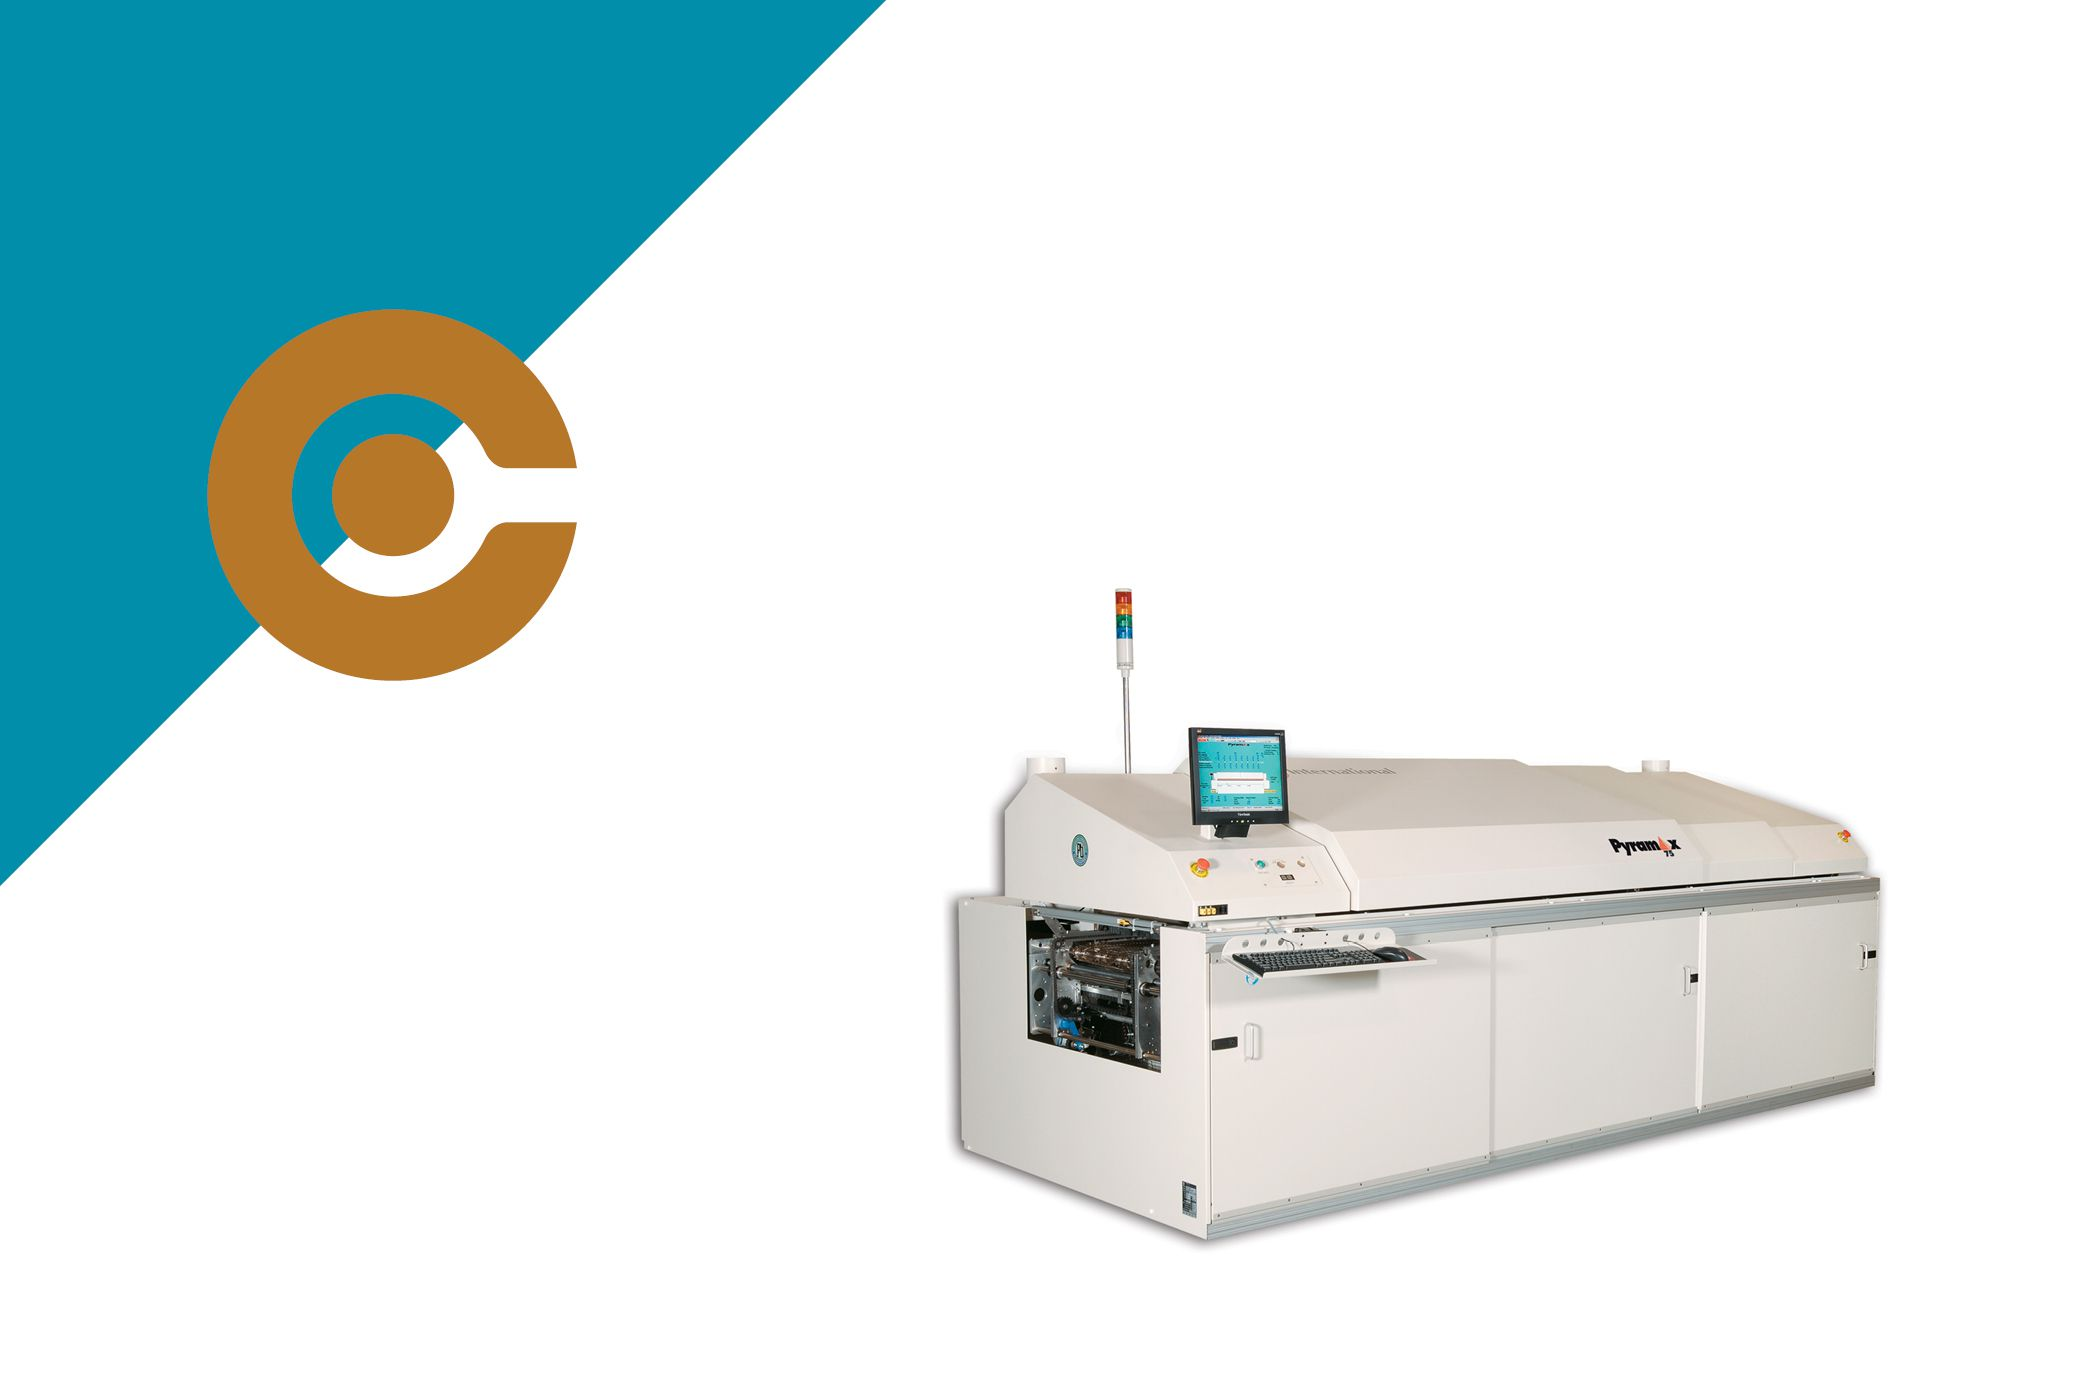 BTU pyramax 75a soldering reflow oven for SMT assembly line